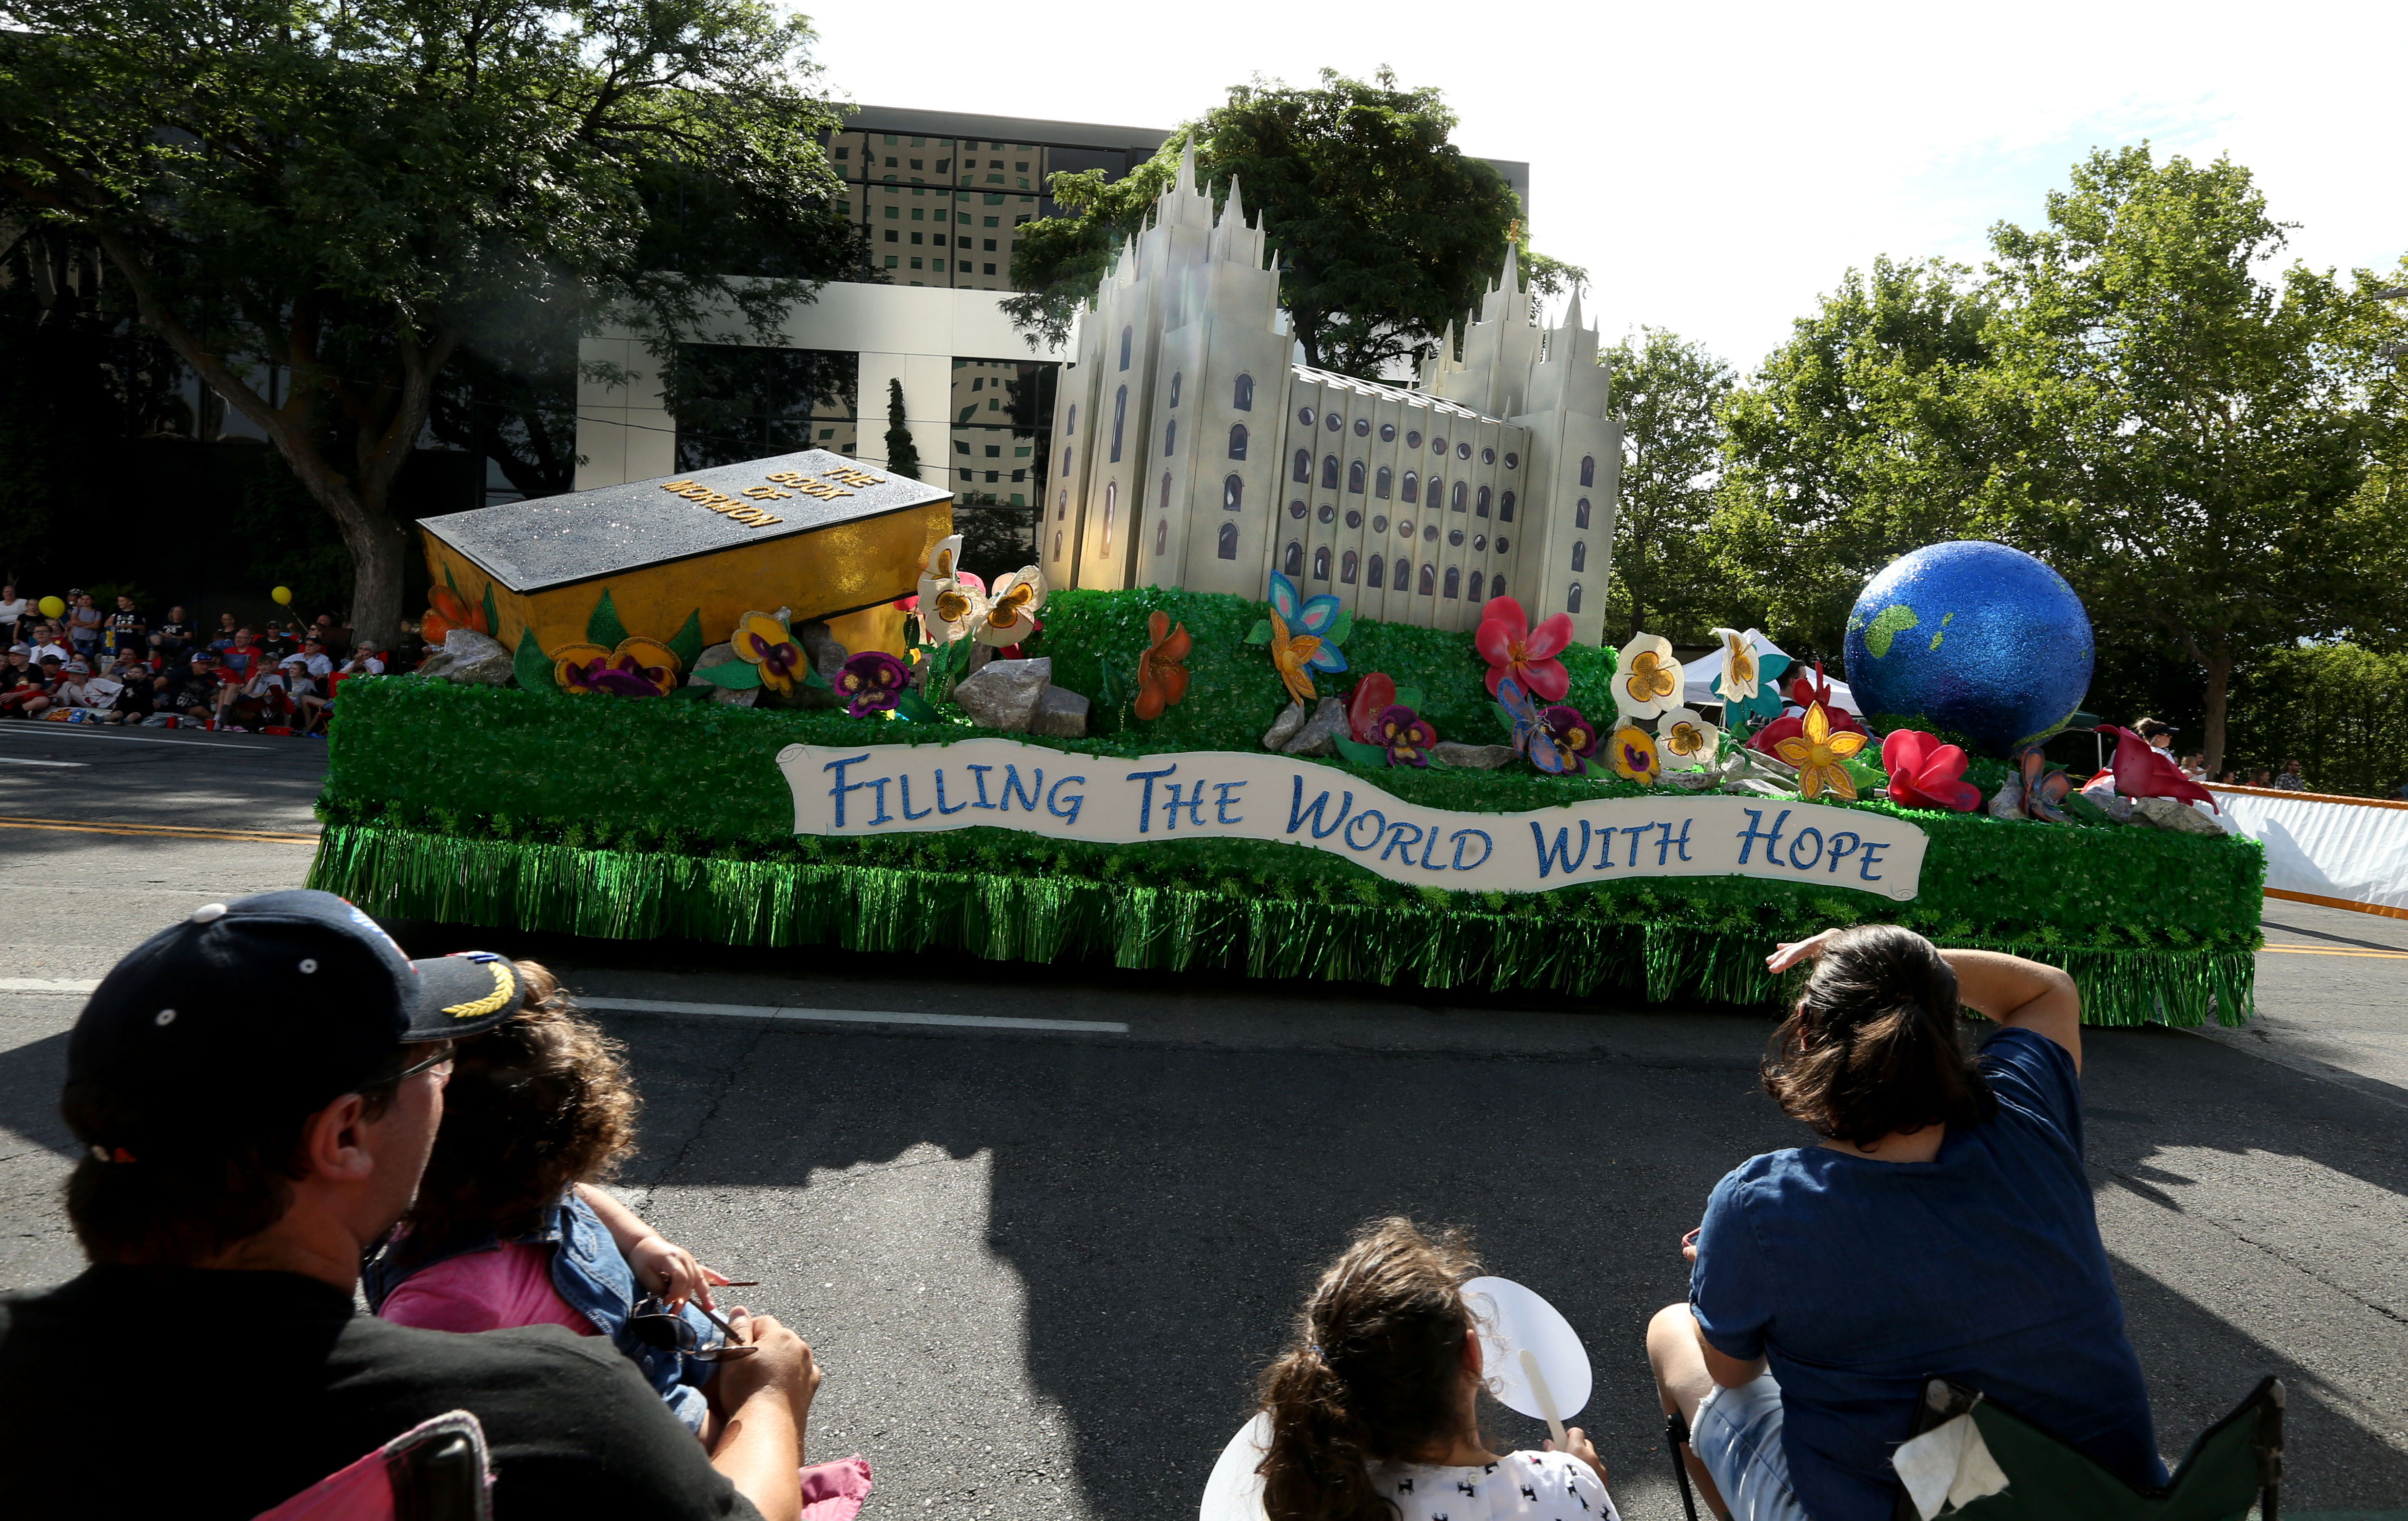 A float decorated with a temple of The Church of Jesus Christ of Latter-day Saints passes by onlookers during the Days of '47 Parade in Salt Lake City on Wednesday, July 24, 2019.